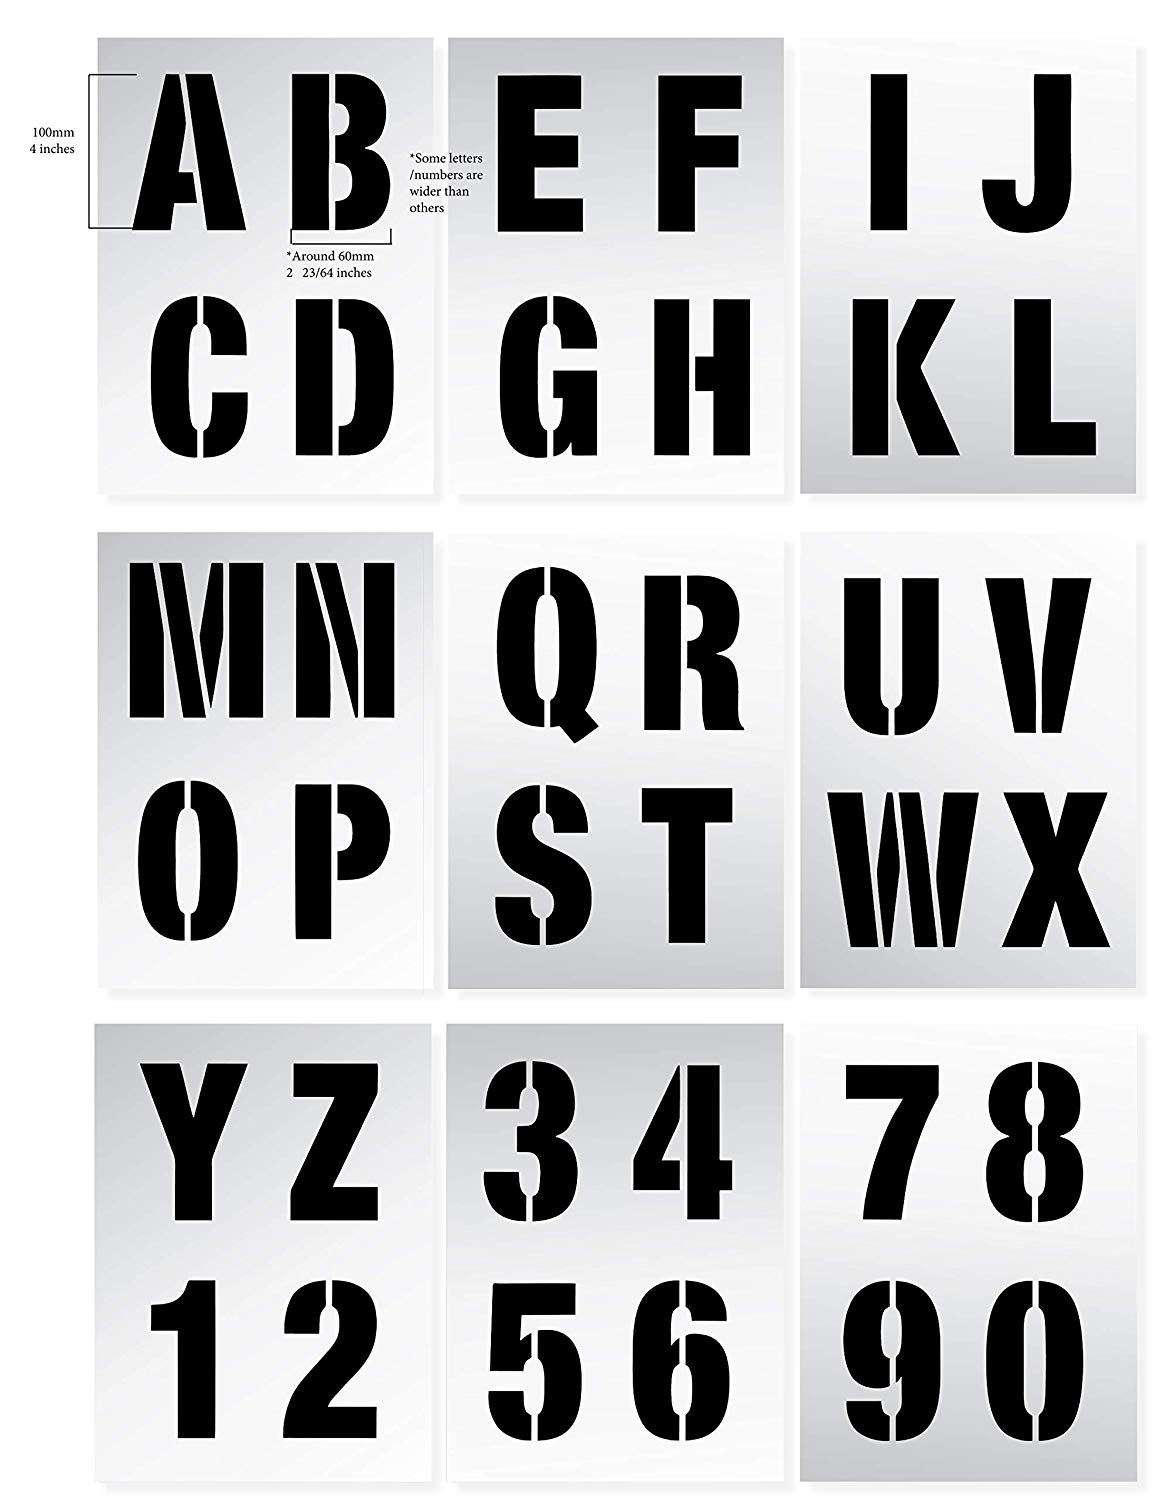 LETTER STENCILS 100mm tall 4 inch LARGE MODERN STYLE CAPITAL LETTERS Reusable /&